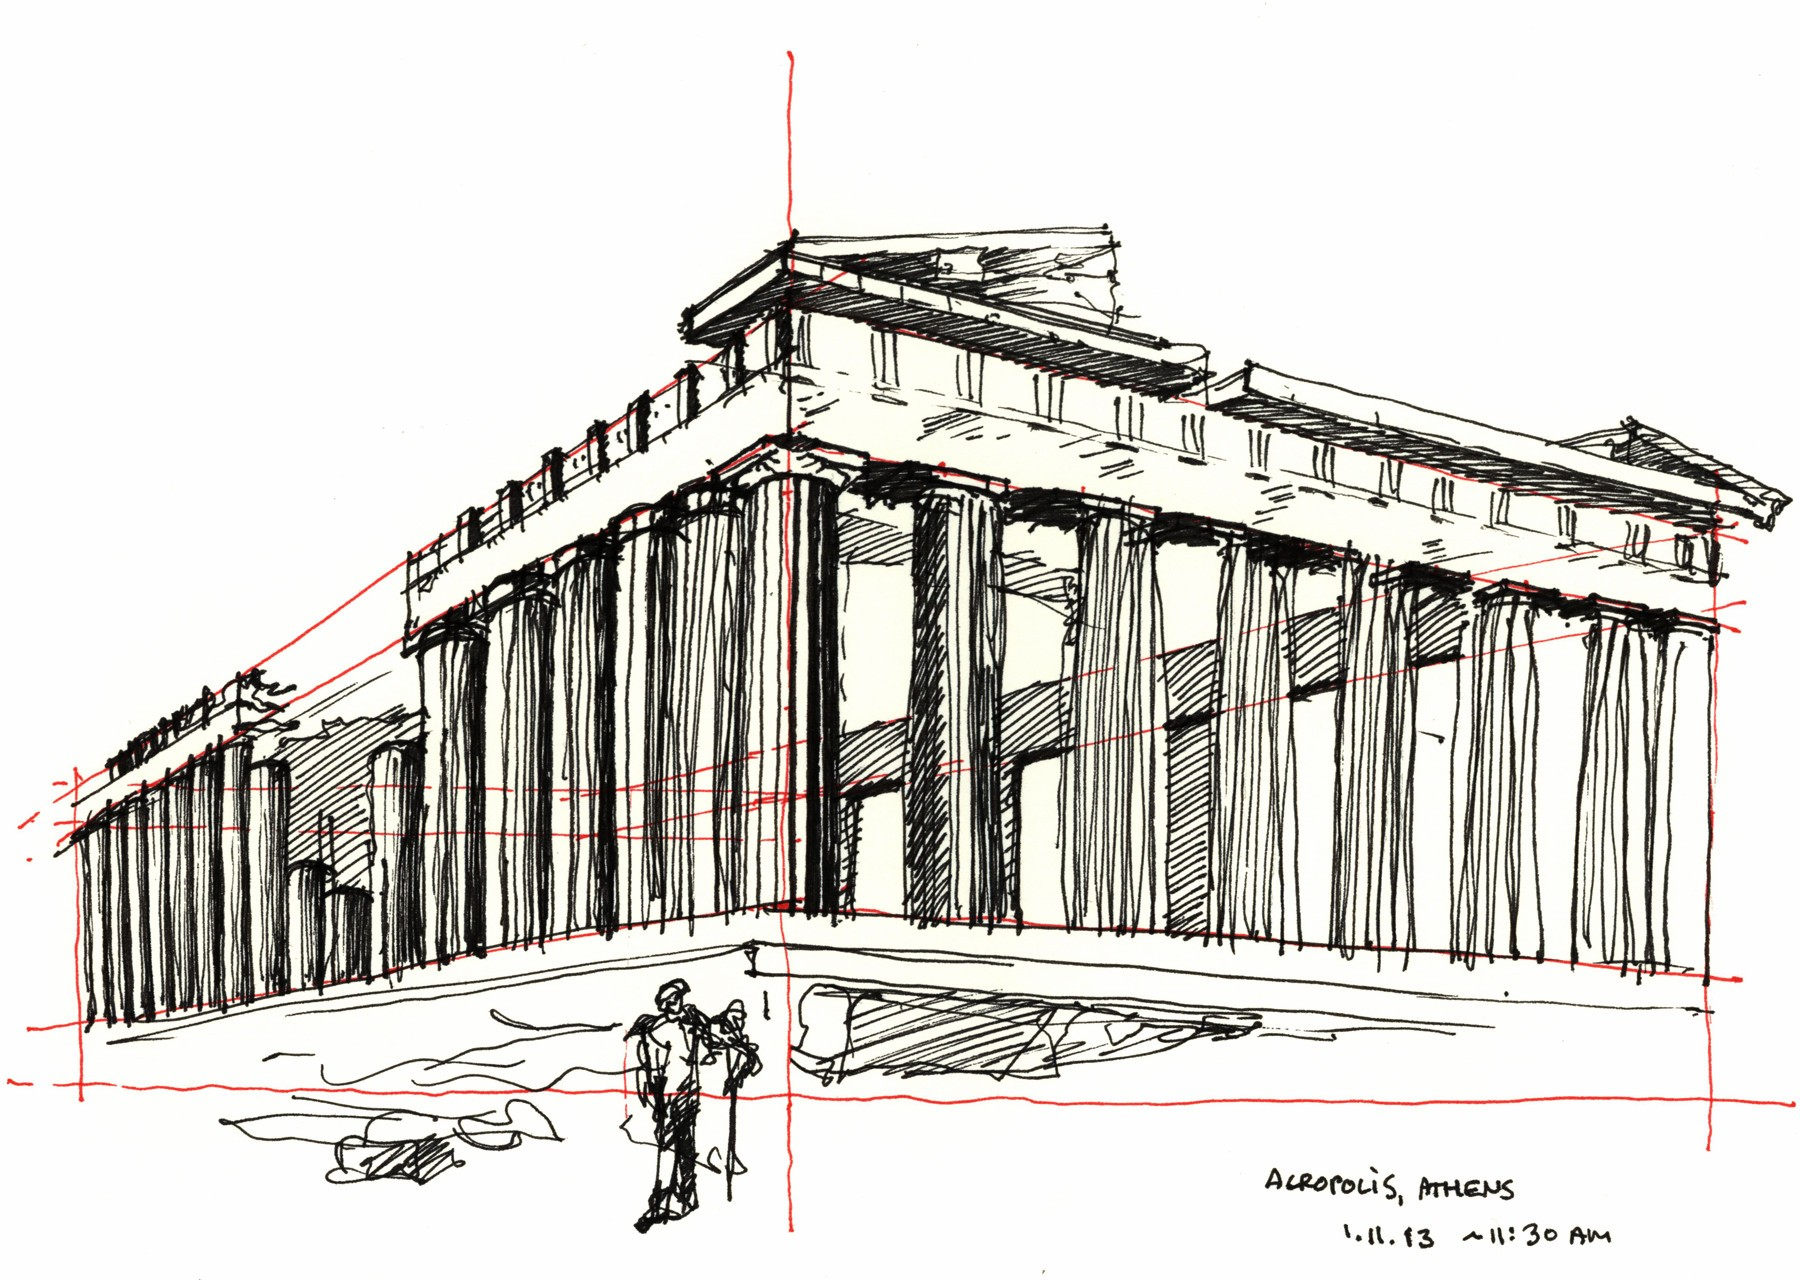 2014-01-11 The Parthenon, Athens